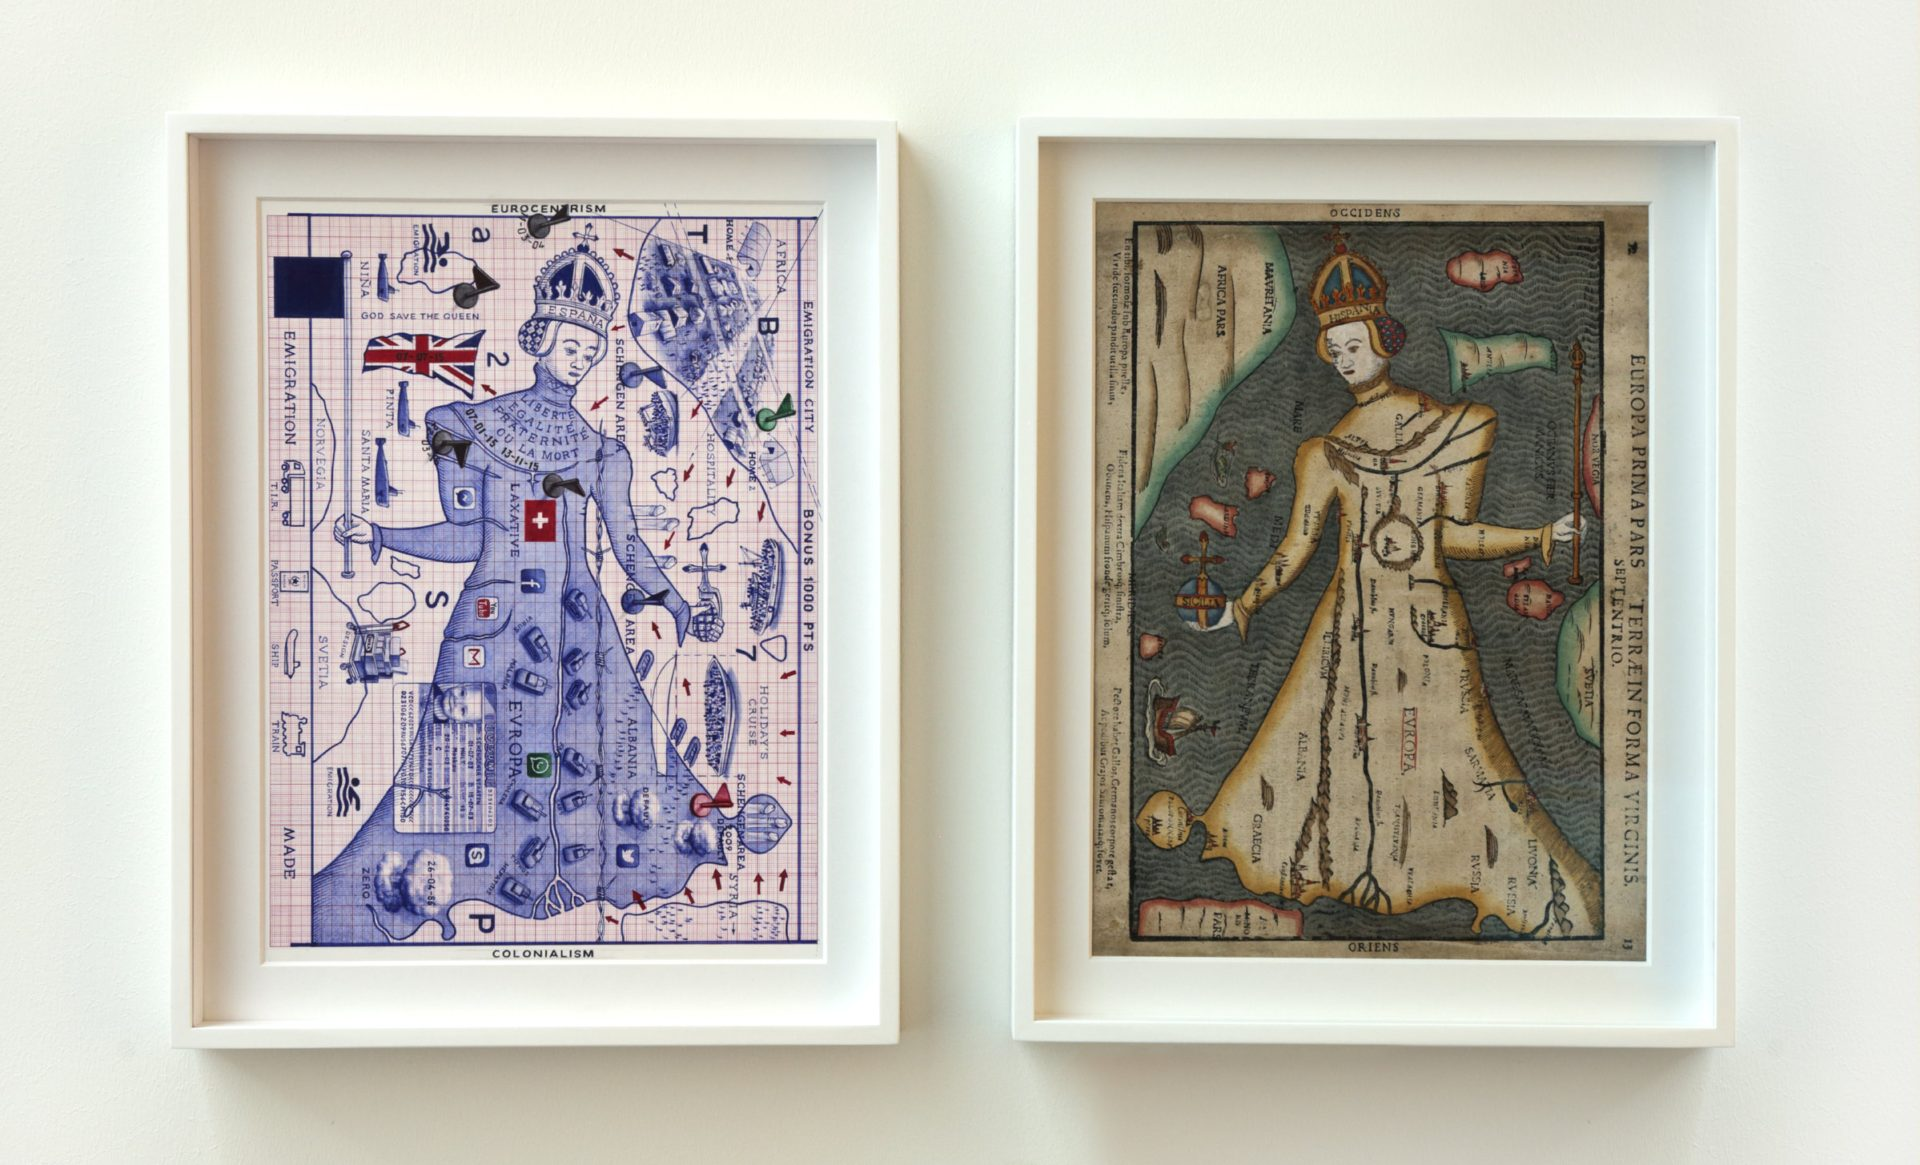 Game Over, 2016 / 1581. Diptych: bic pen on paper; Einrich Bunting, Europa prima pars Terrae in forma virginis, xylography, colored by hand, from Itinerarium Sacrae Scripturae 45 x 35,5 cm each